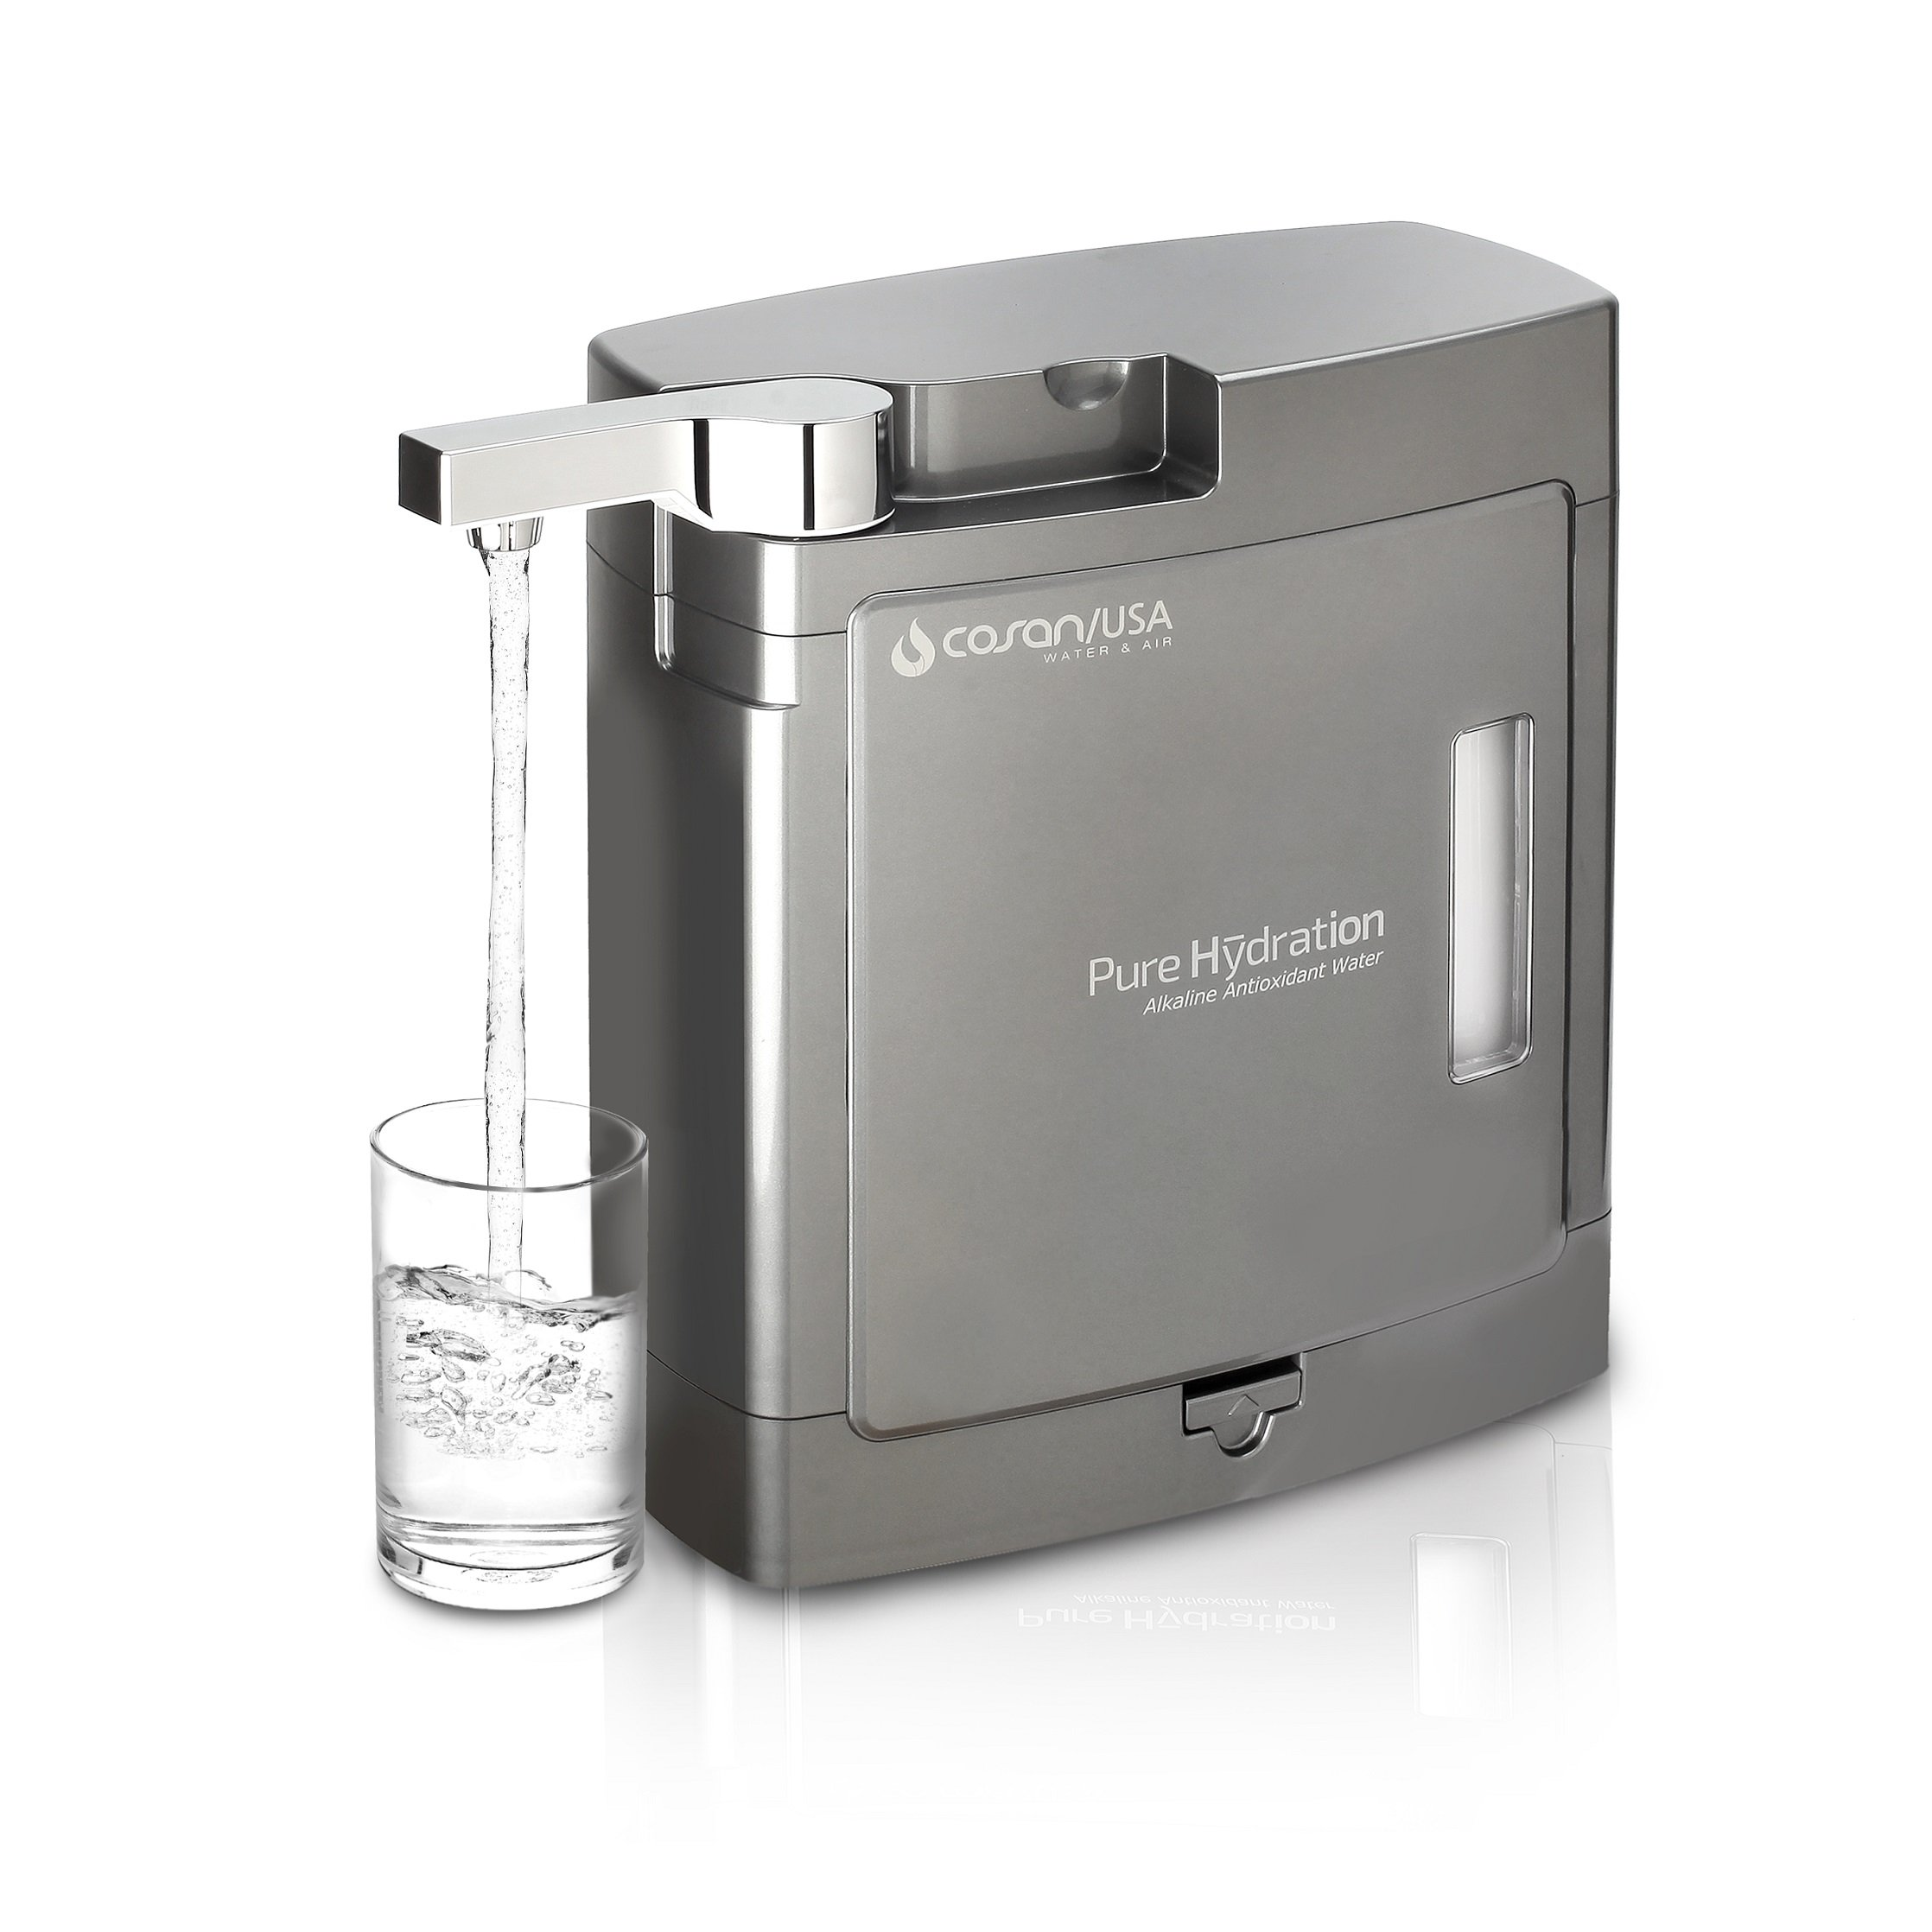 Pure Hydration Alkaline Antioxidant Water Ionizer. Over 100,000 sold worldwide. by Pure Hydration